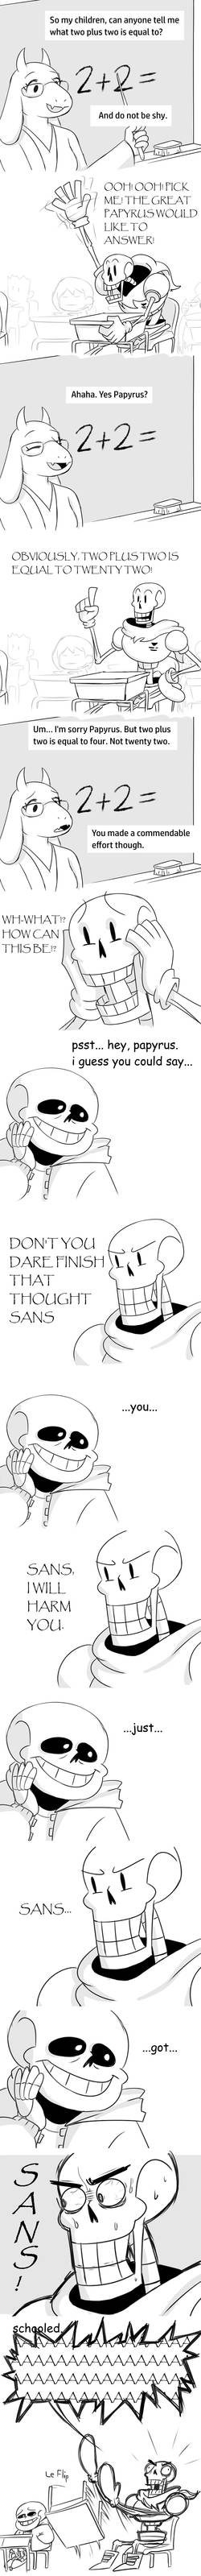 Undertale Comic Thingy by The-PaperNES-Guy on DeviantArt